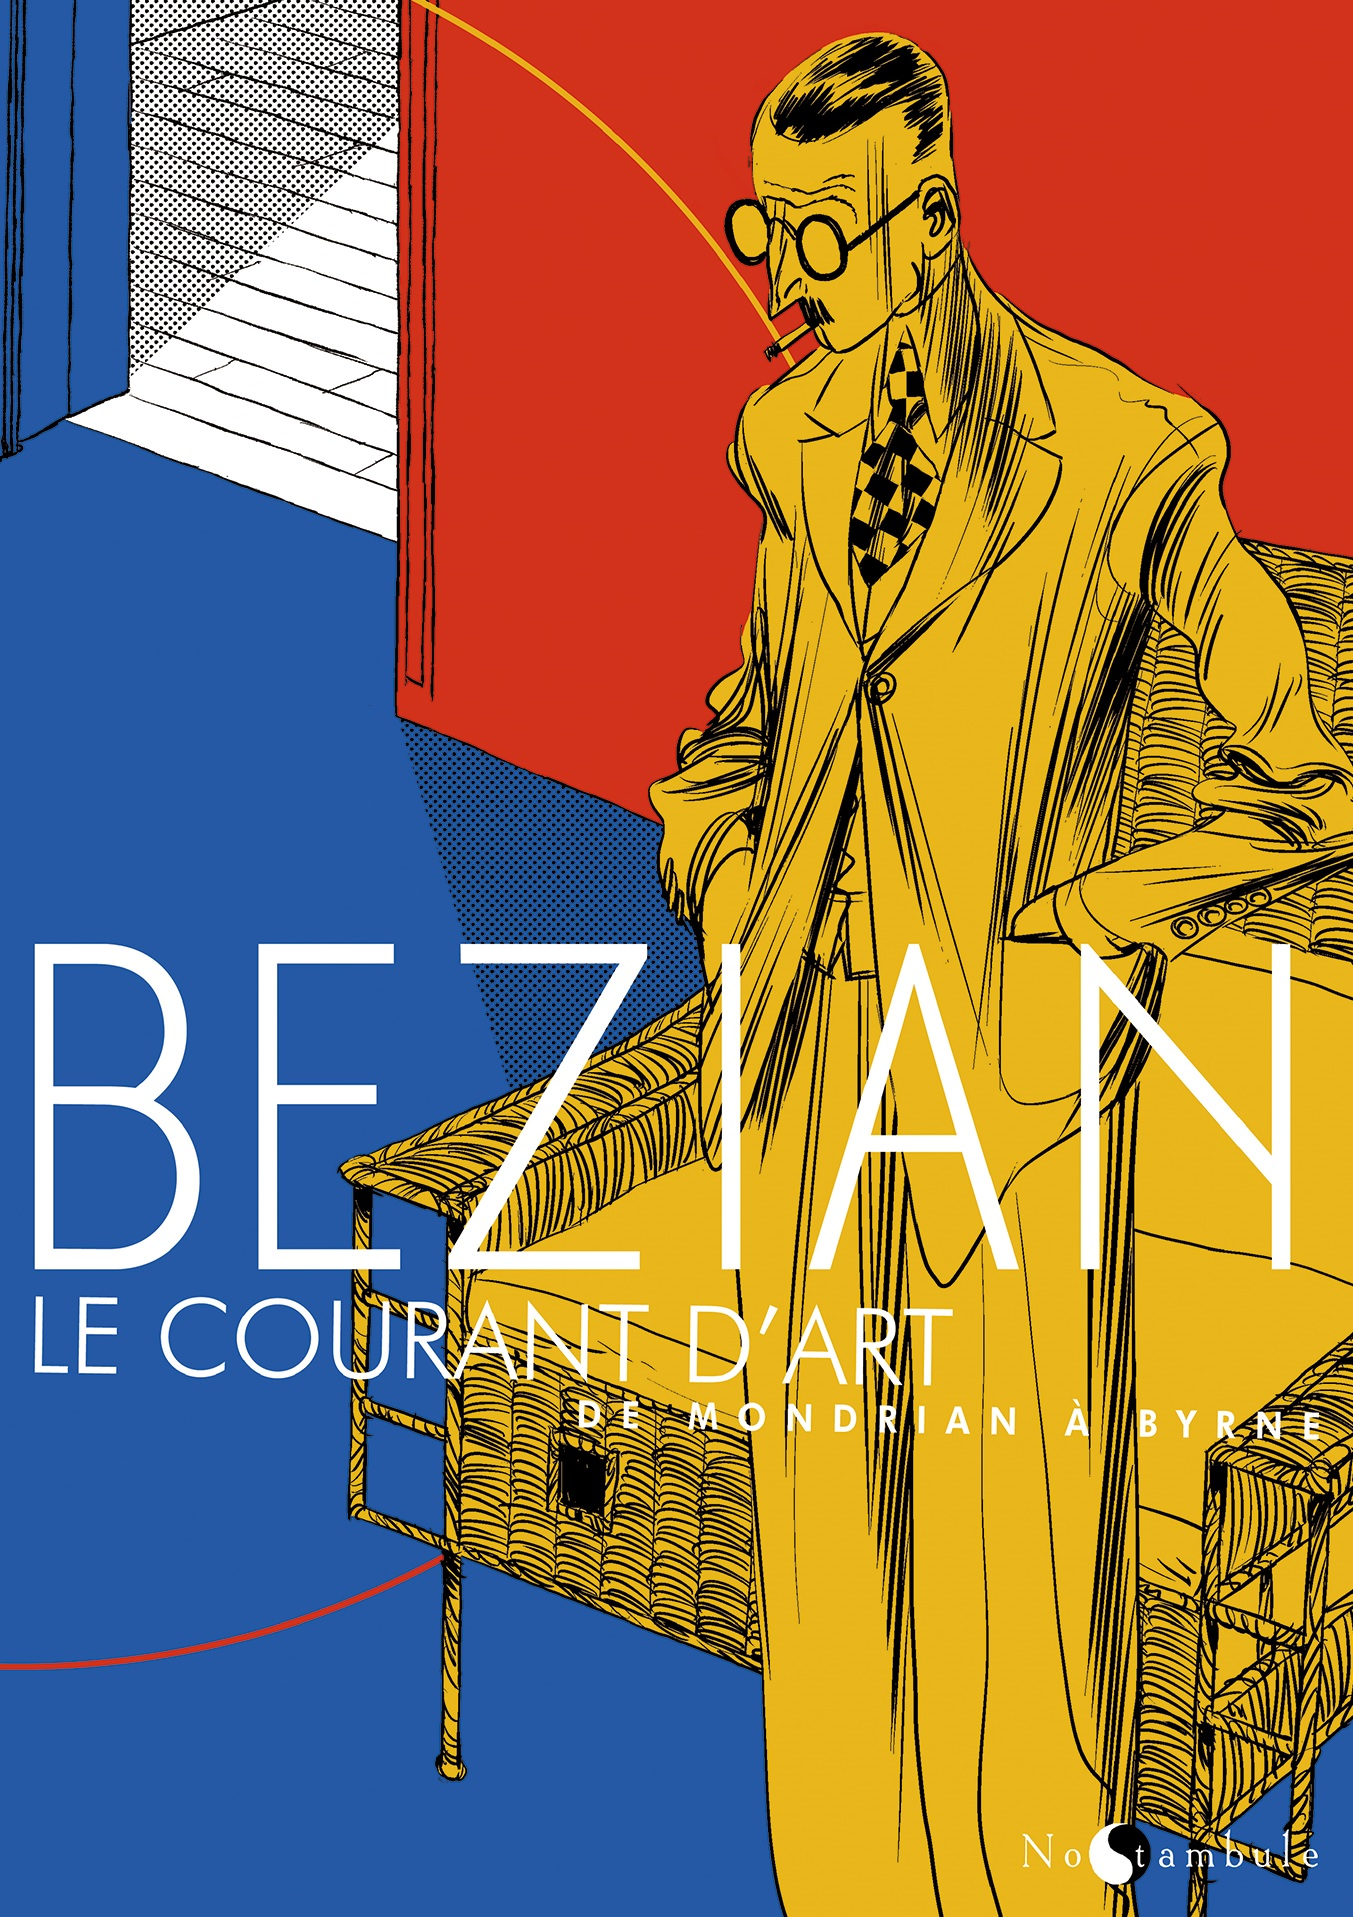 Bezian - Le courant d'art - couverture